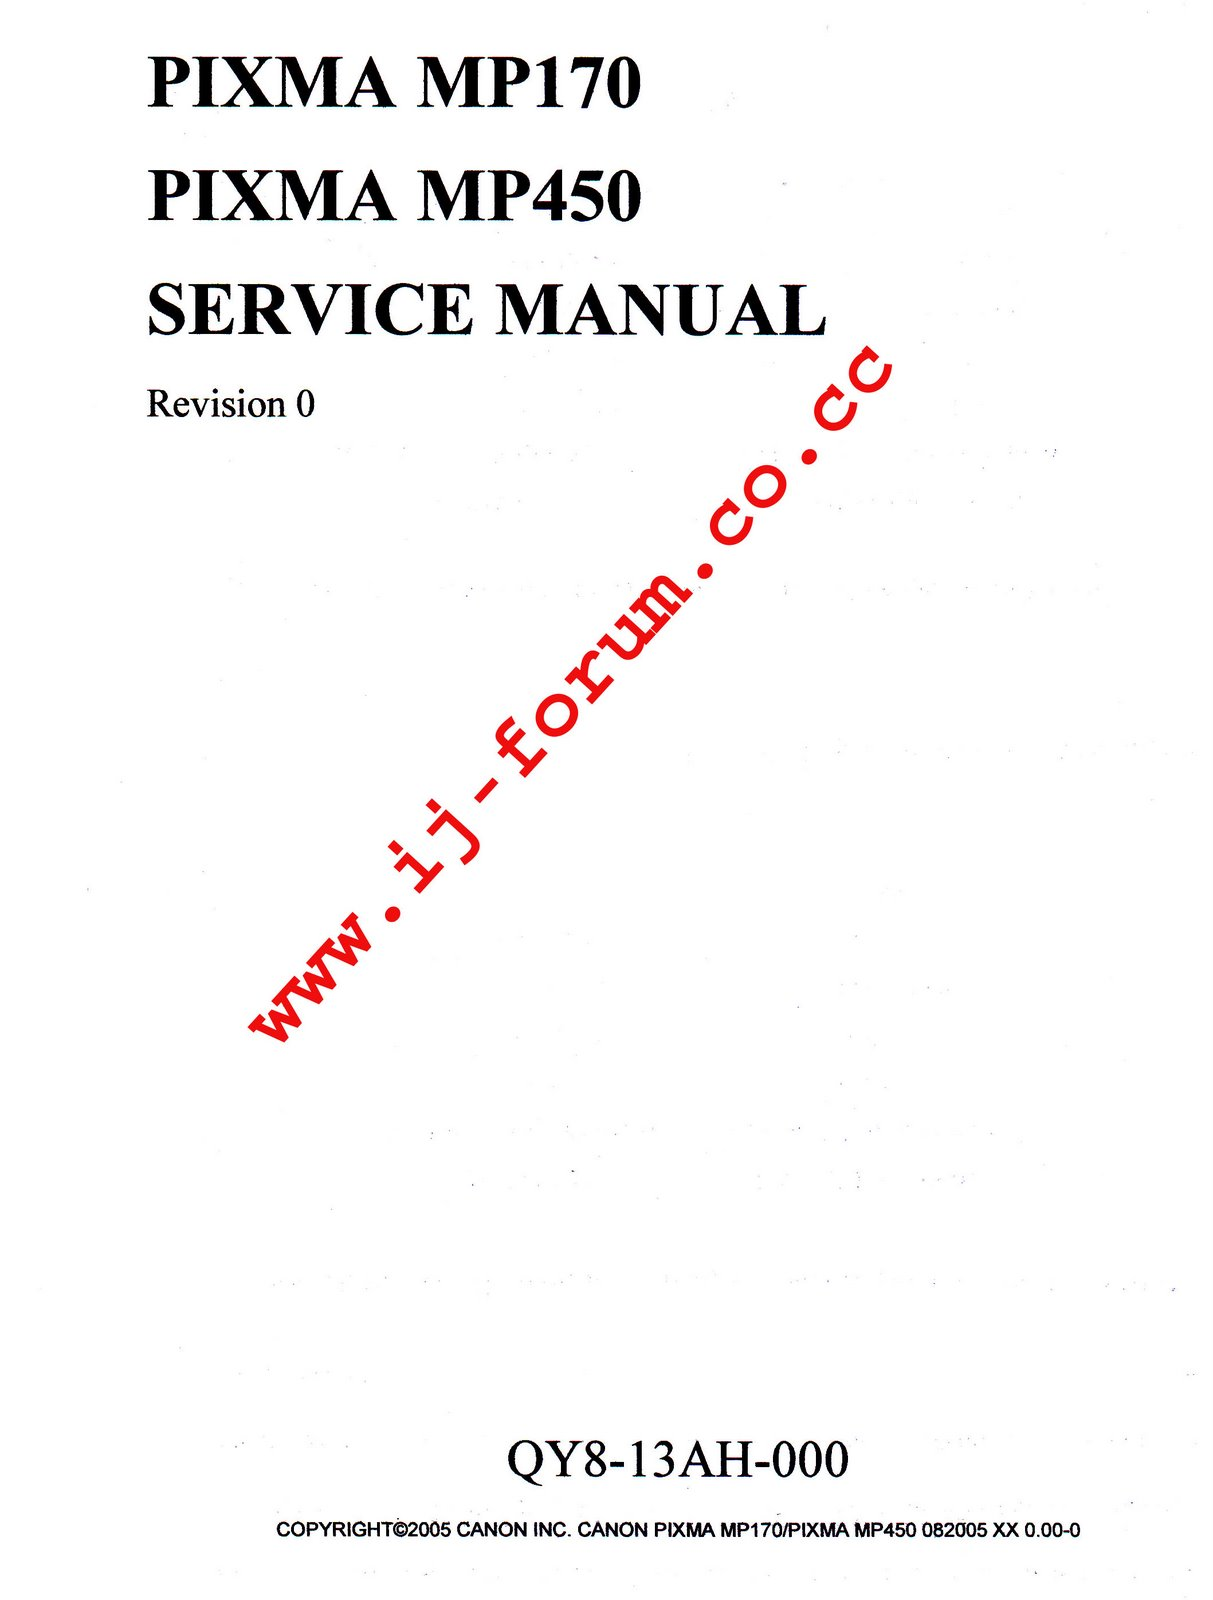 CANON PIXMA MP170 MP450 SERVICE MANUAL + PARTS CATALOG